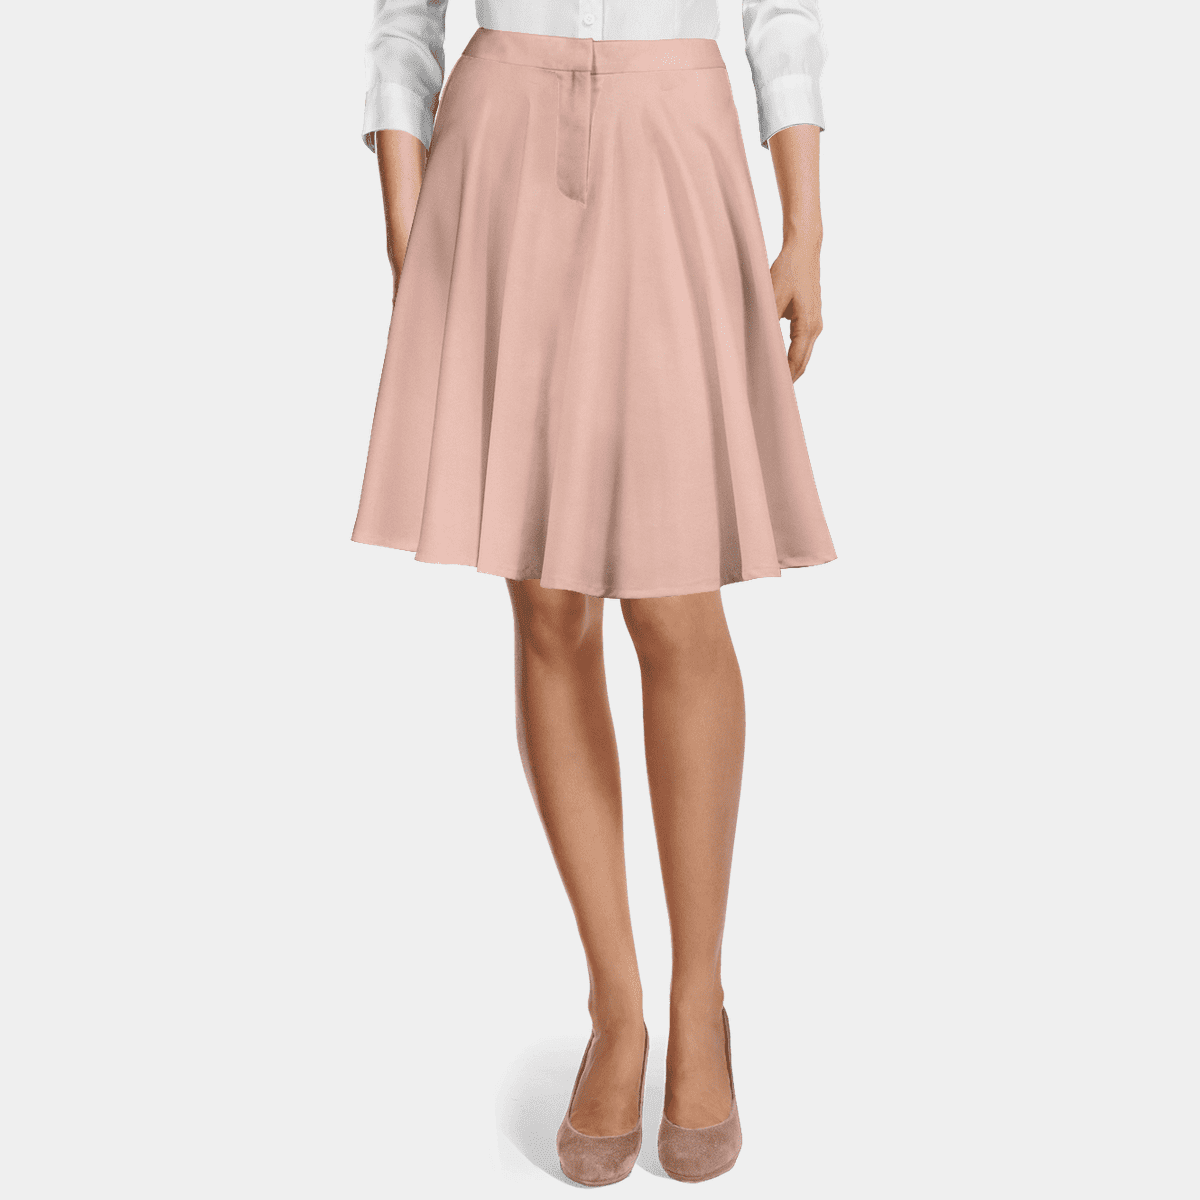 Pink high waisted flared Skirt 69€ | Sumissura